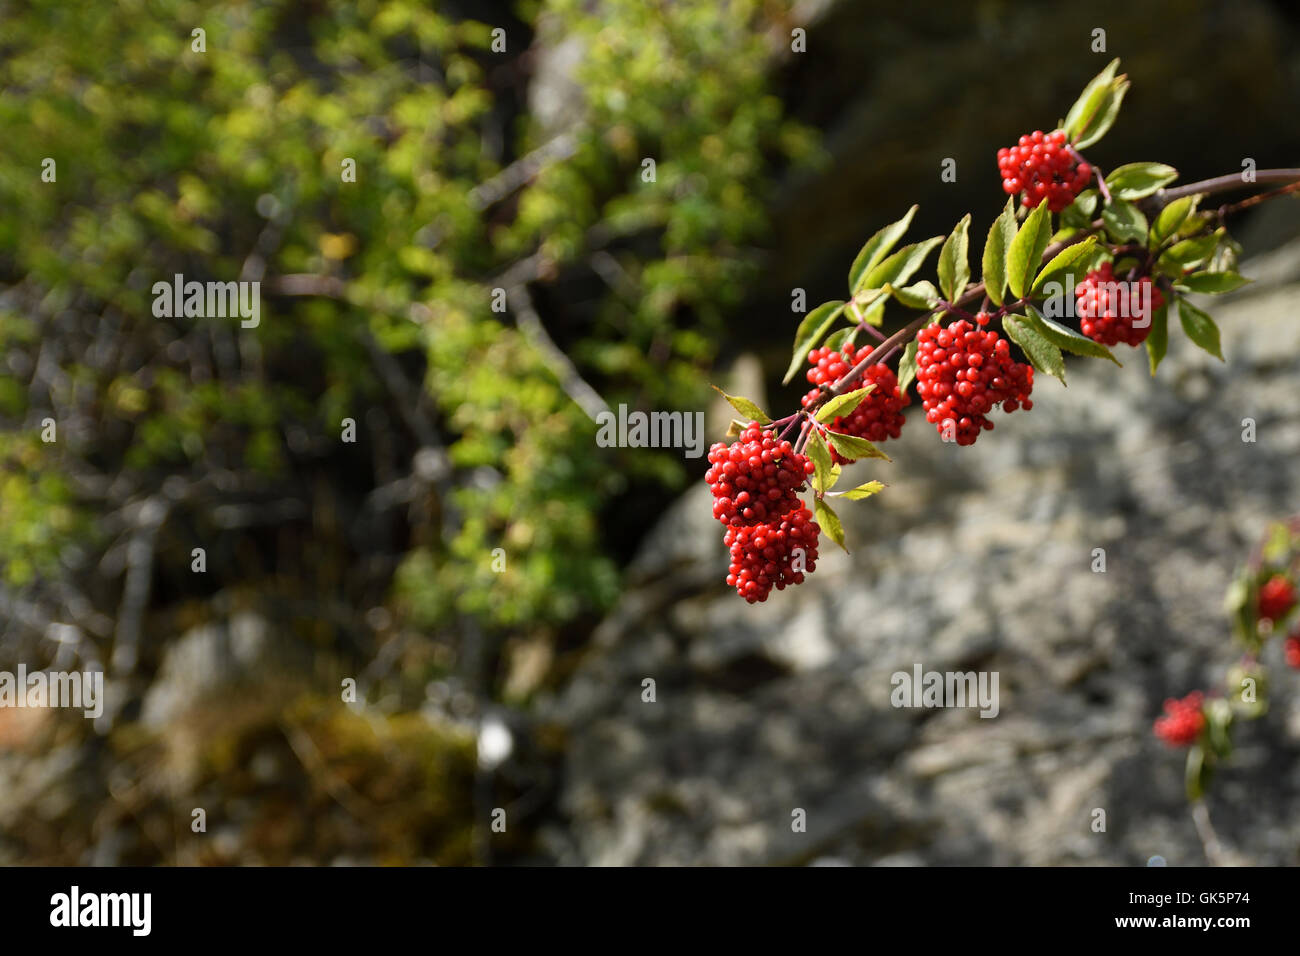 elderberry photos red elderberry stock photos red elderberry stock images 8546